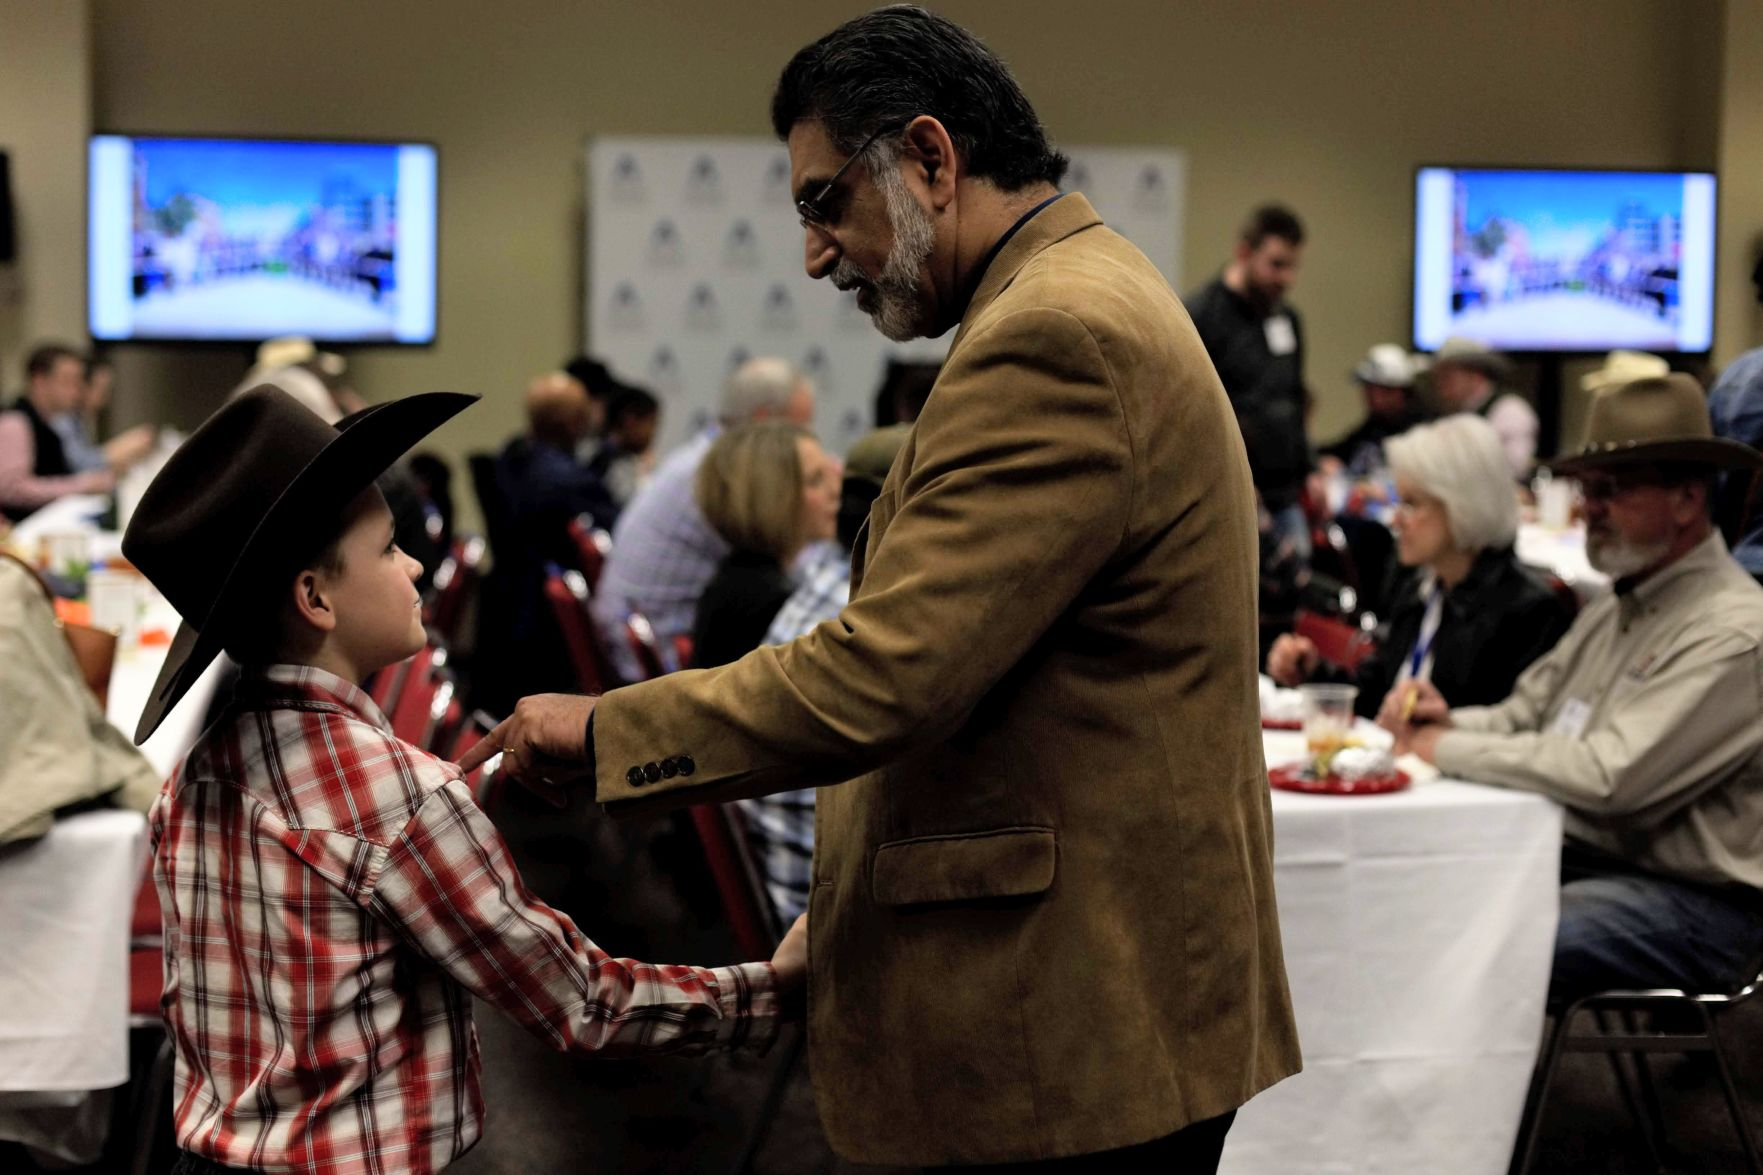 UTA Day at the Fort Worth Stock Show and Rodeo welcomes alumni, students